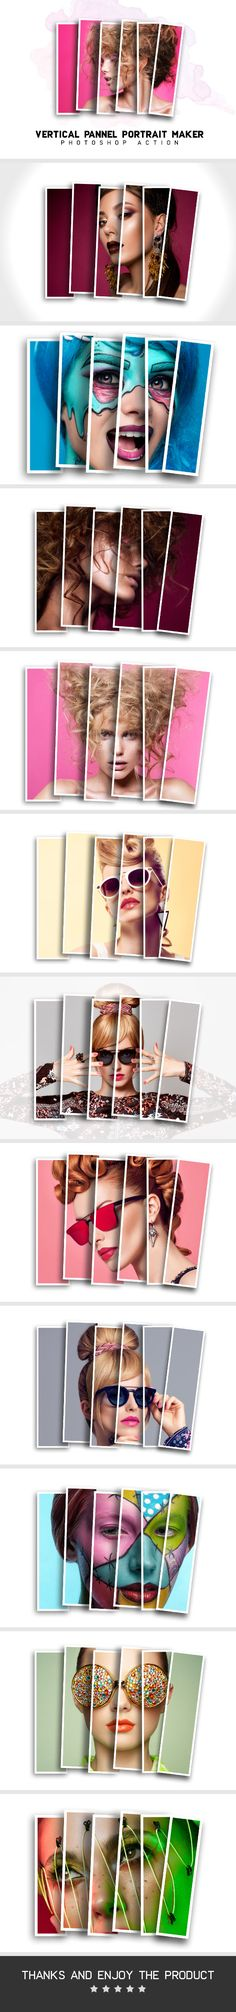 Vertical Panels Collage Photoshop Action - Photo Effects Actions